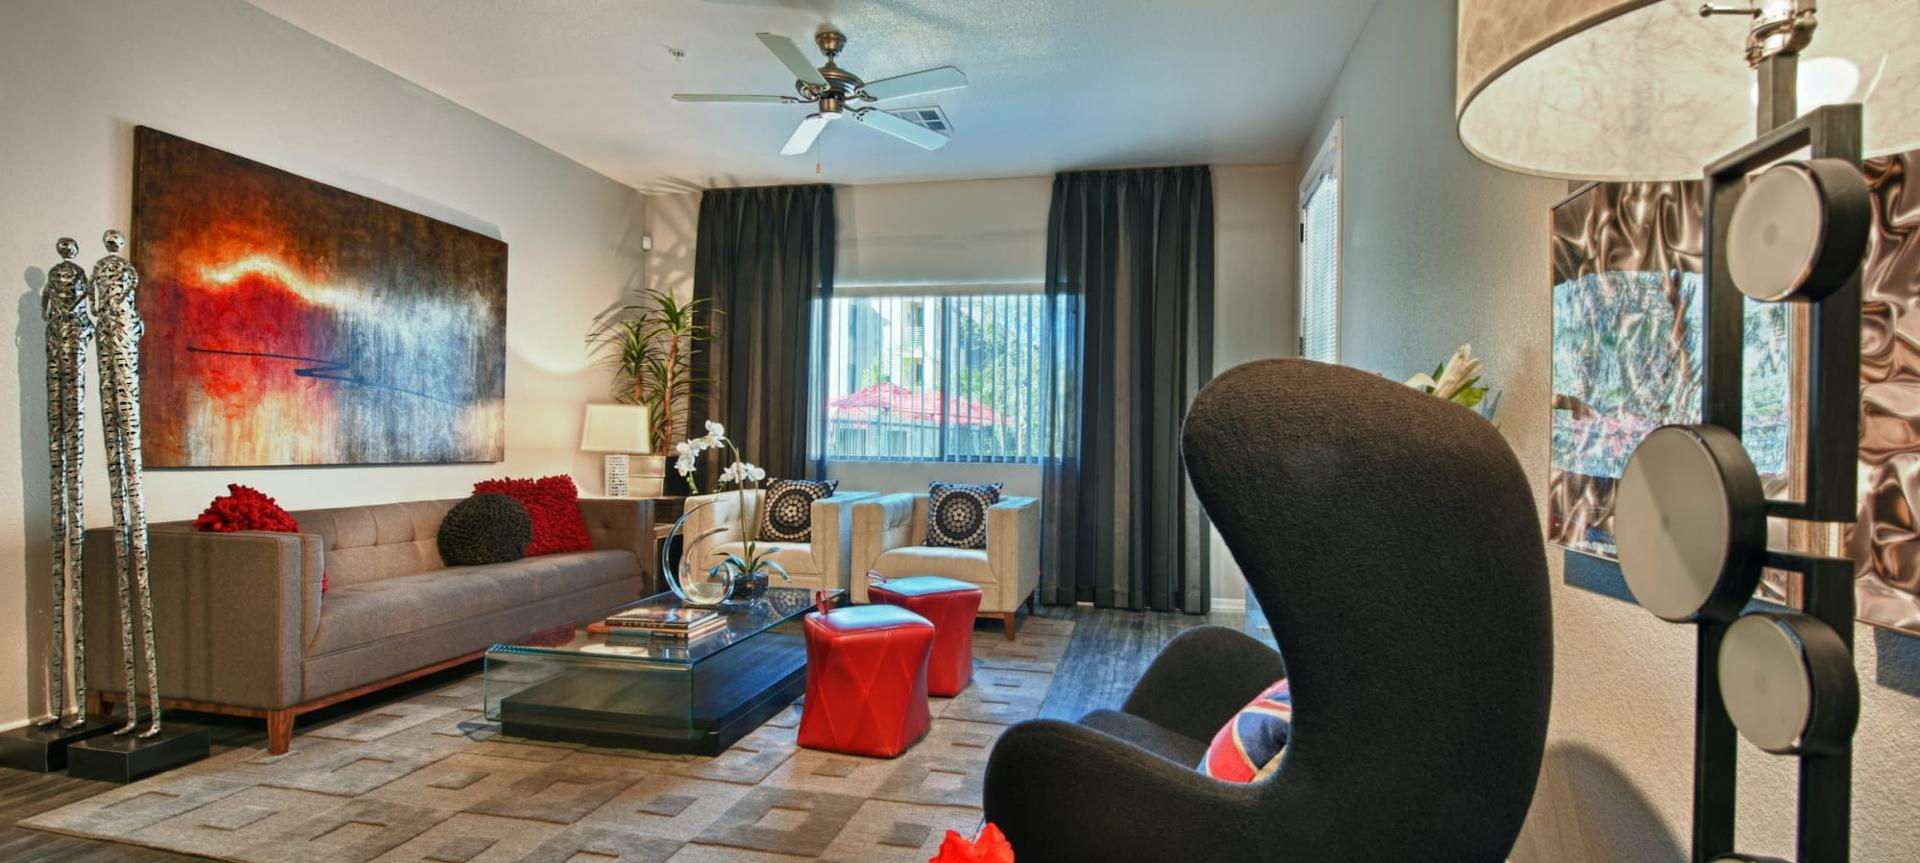 18250 N 25th Ave #2060 - 2220USD / month